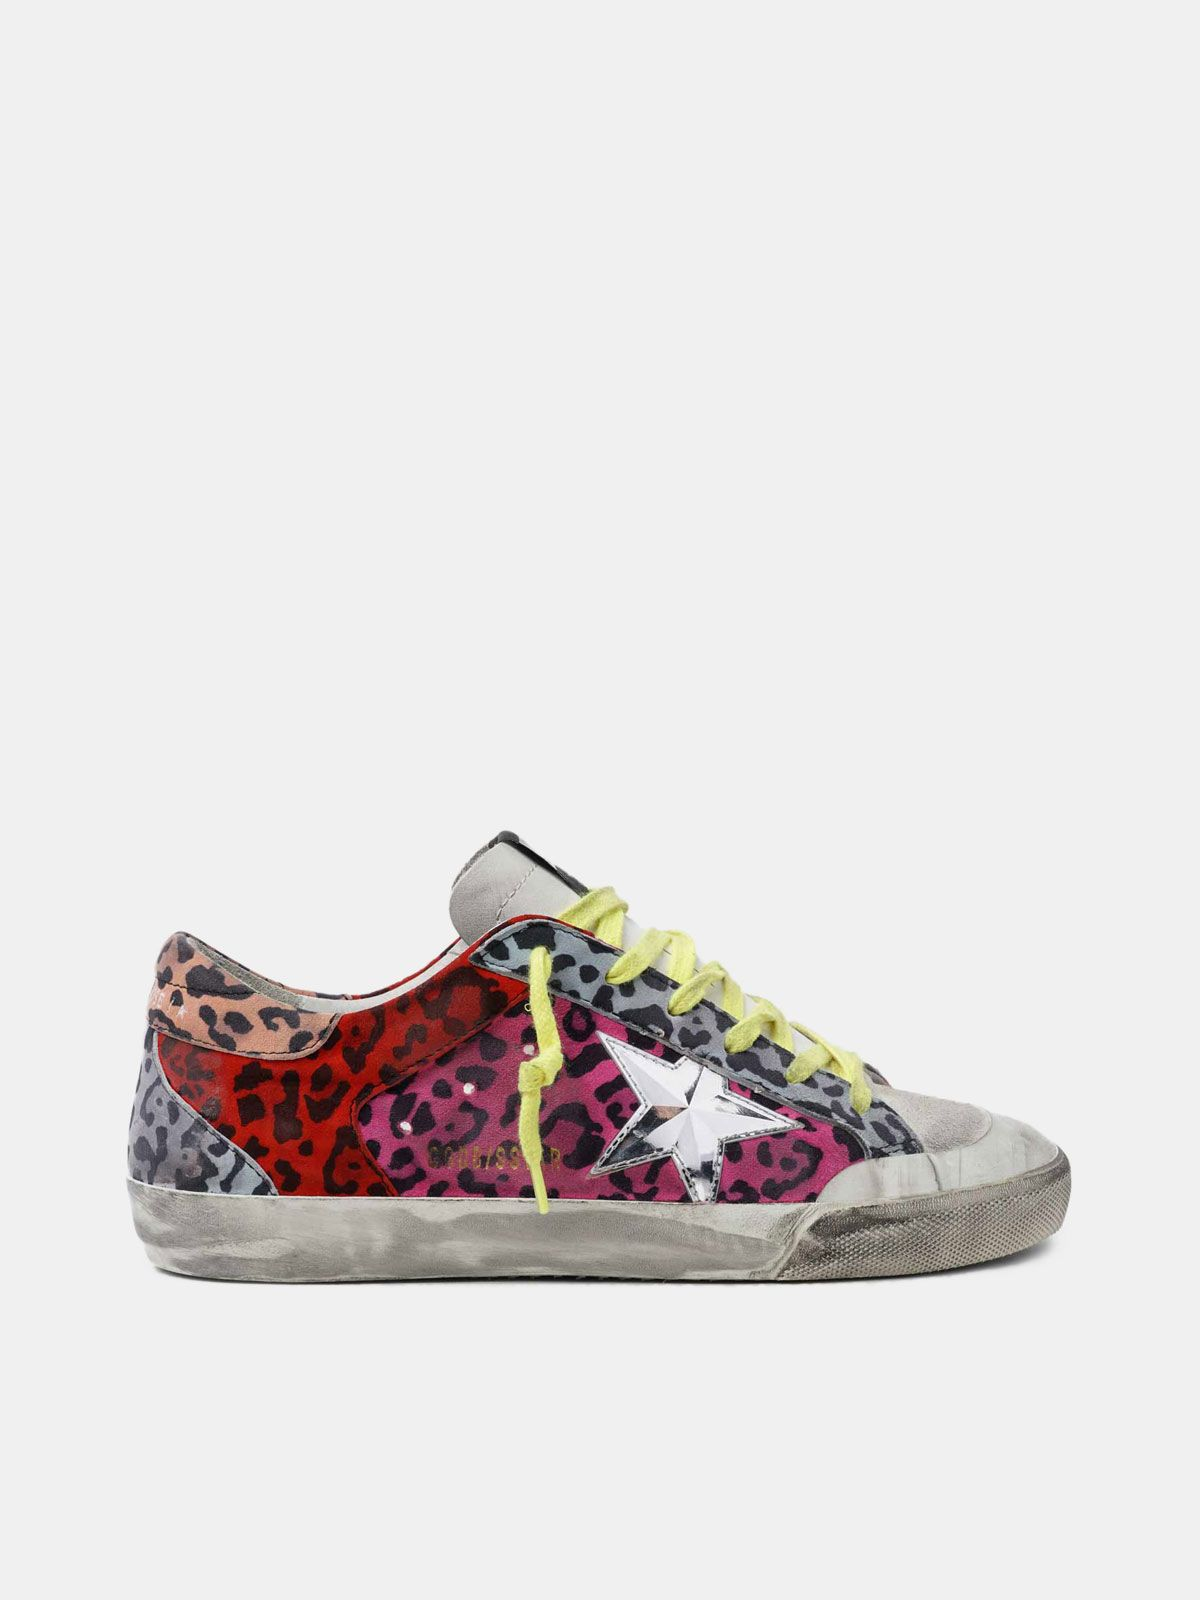 Golden Goose - Multicoloured animal-print Super-Star sneakers with chrome star in